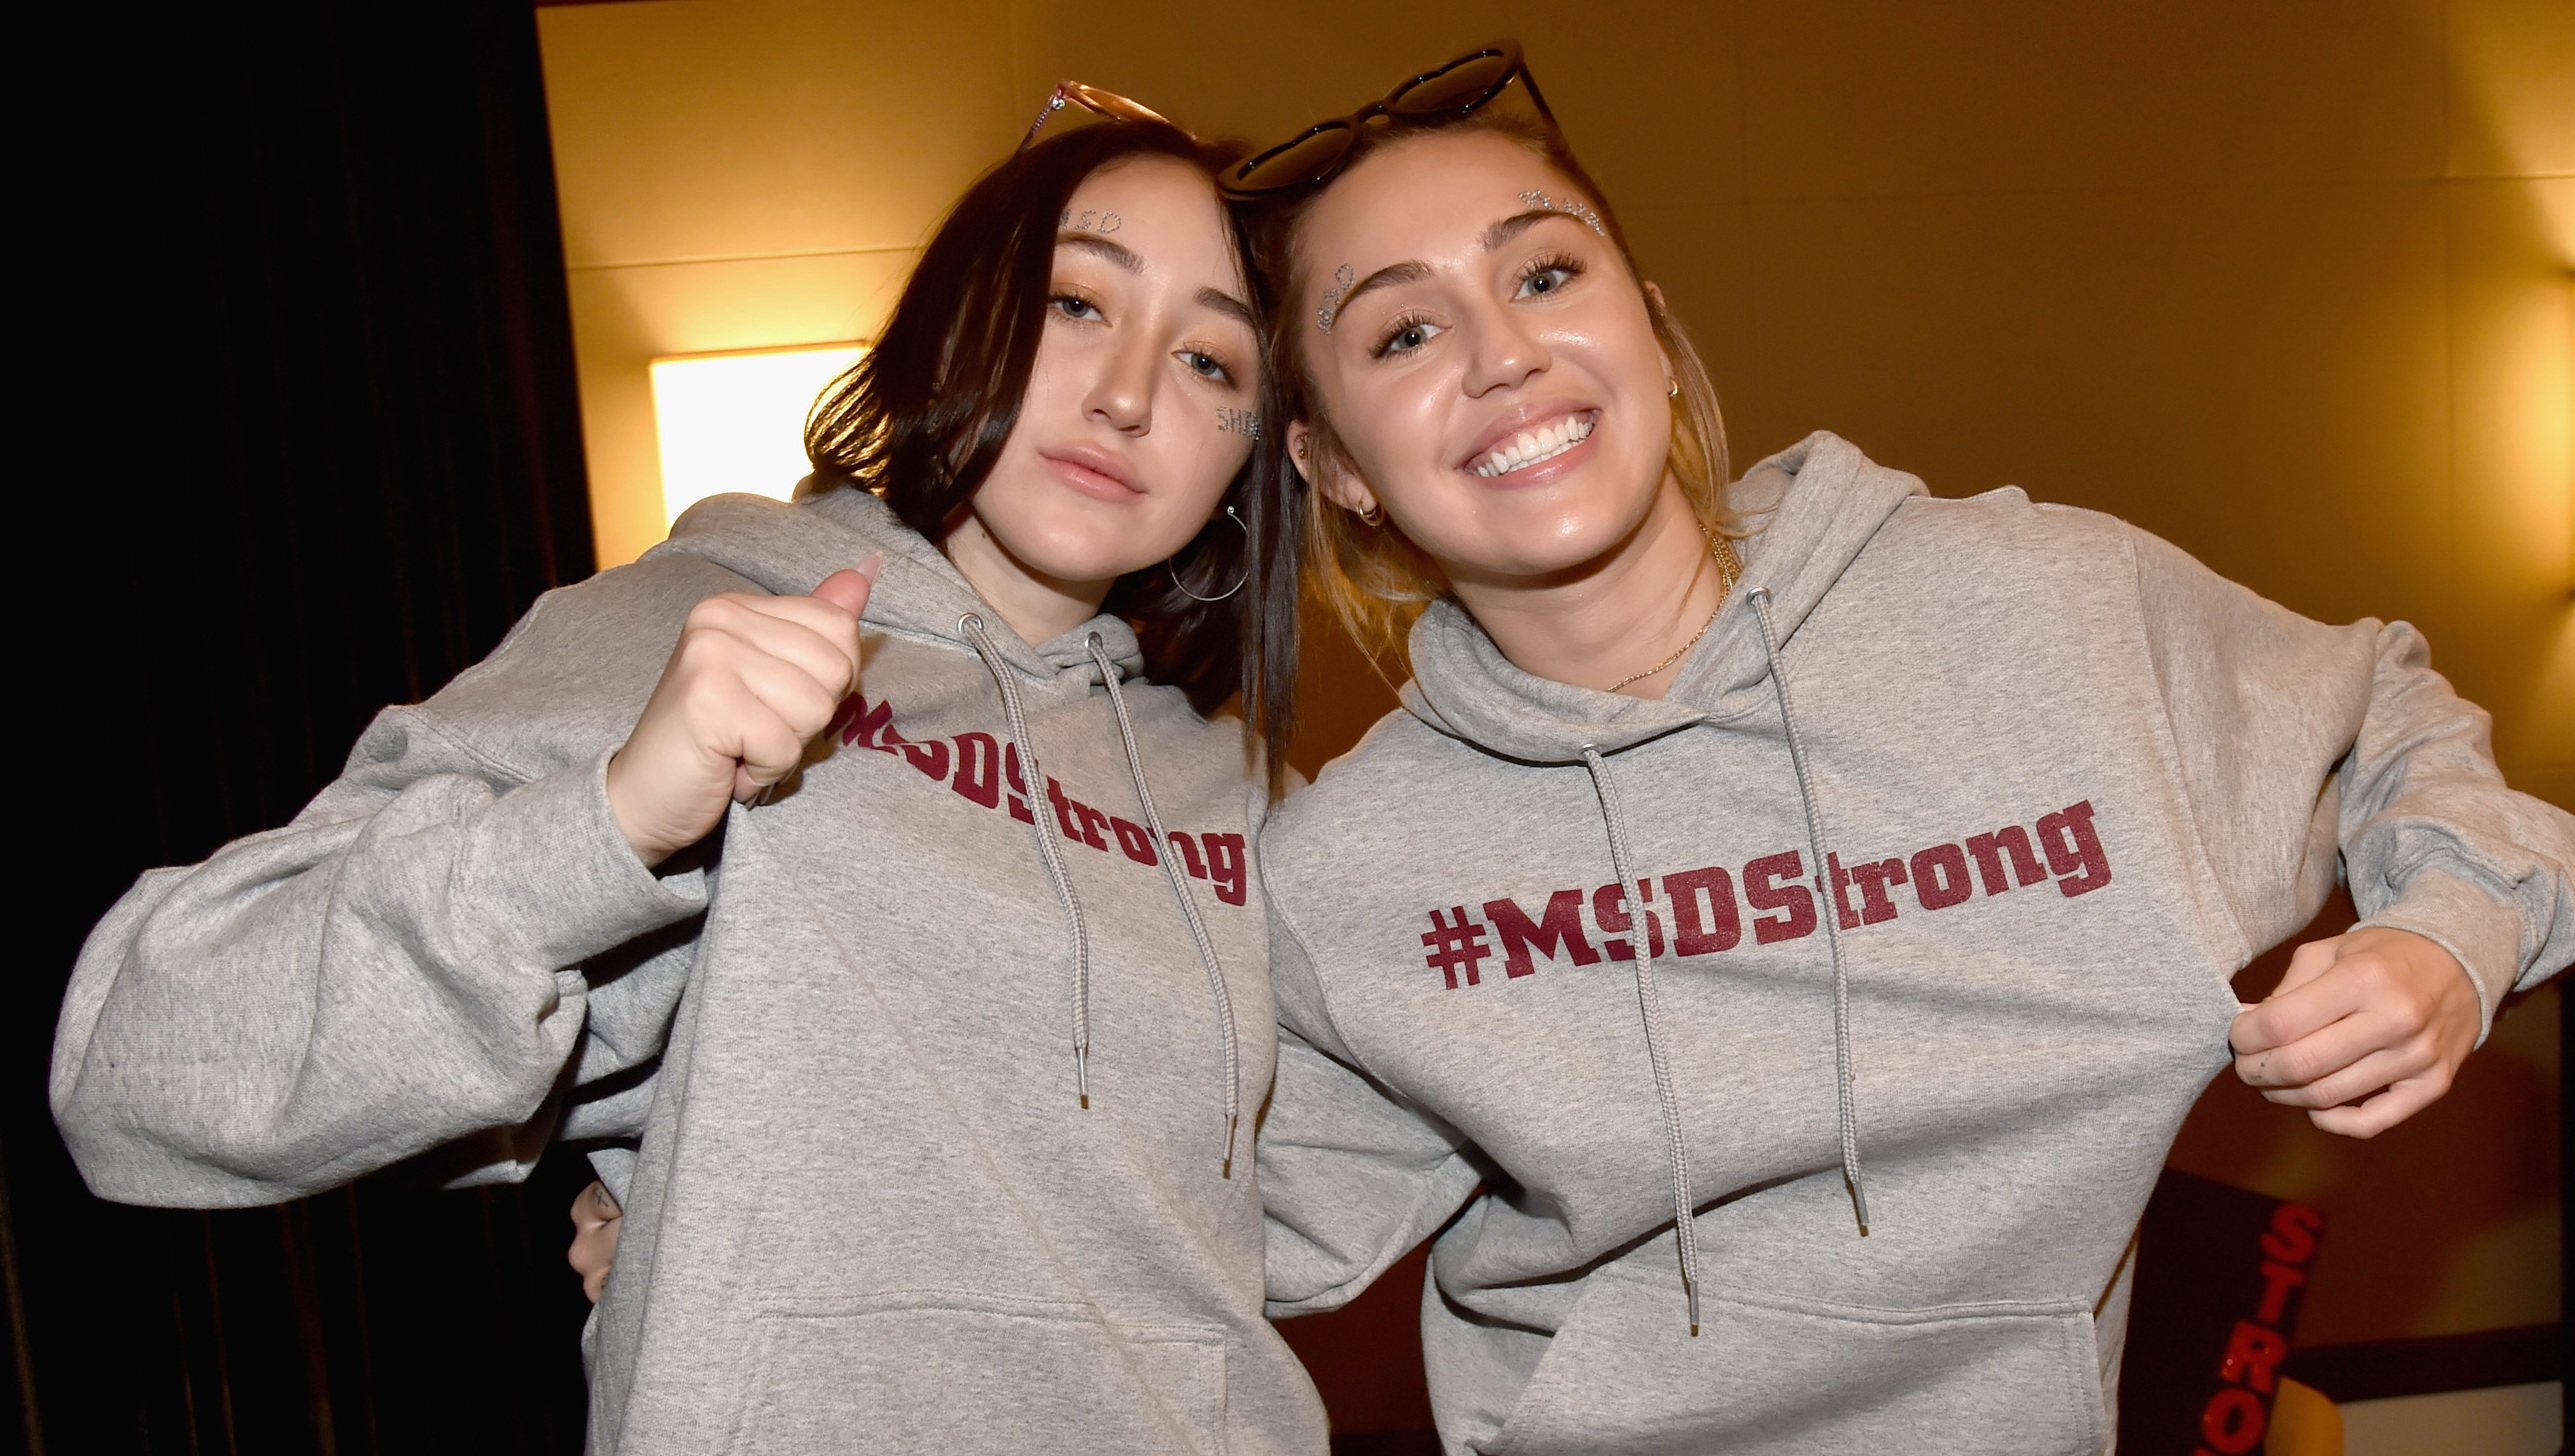 Noah Cyrus doesn't want to be compared to Miley Cyrus